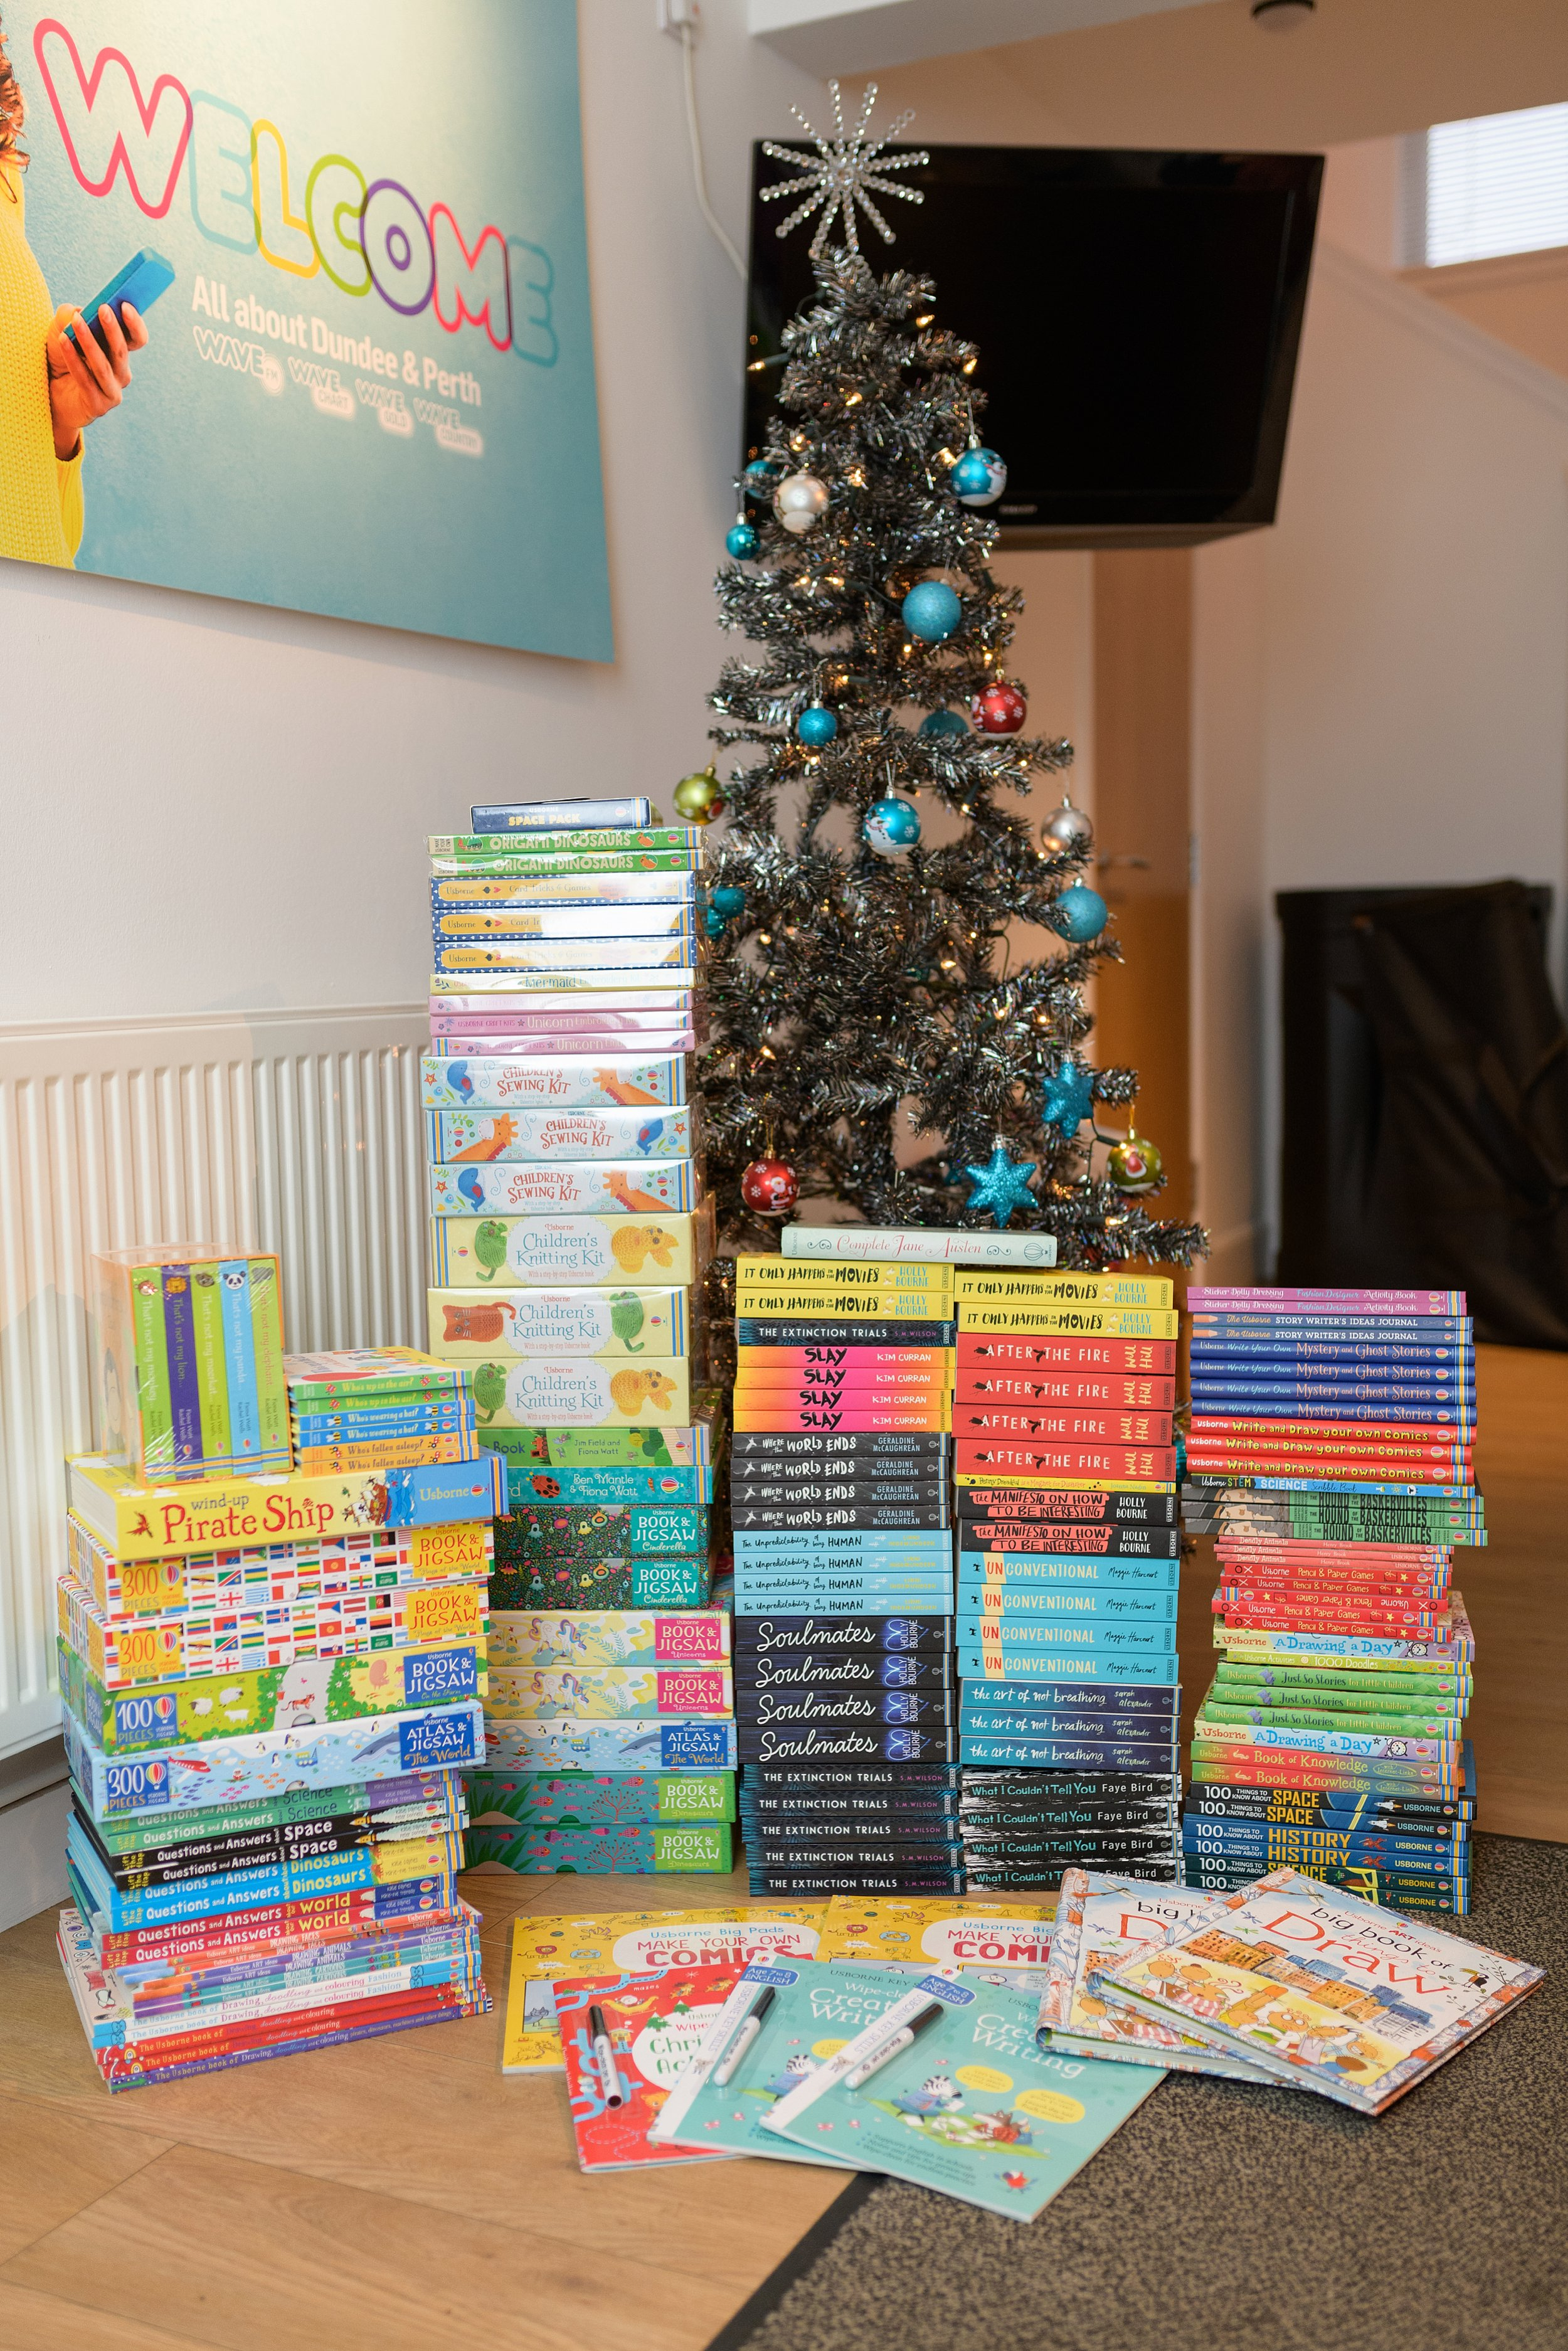 £1300 worth of books delivered, Fiona hopes to increase this amount each year.